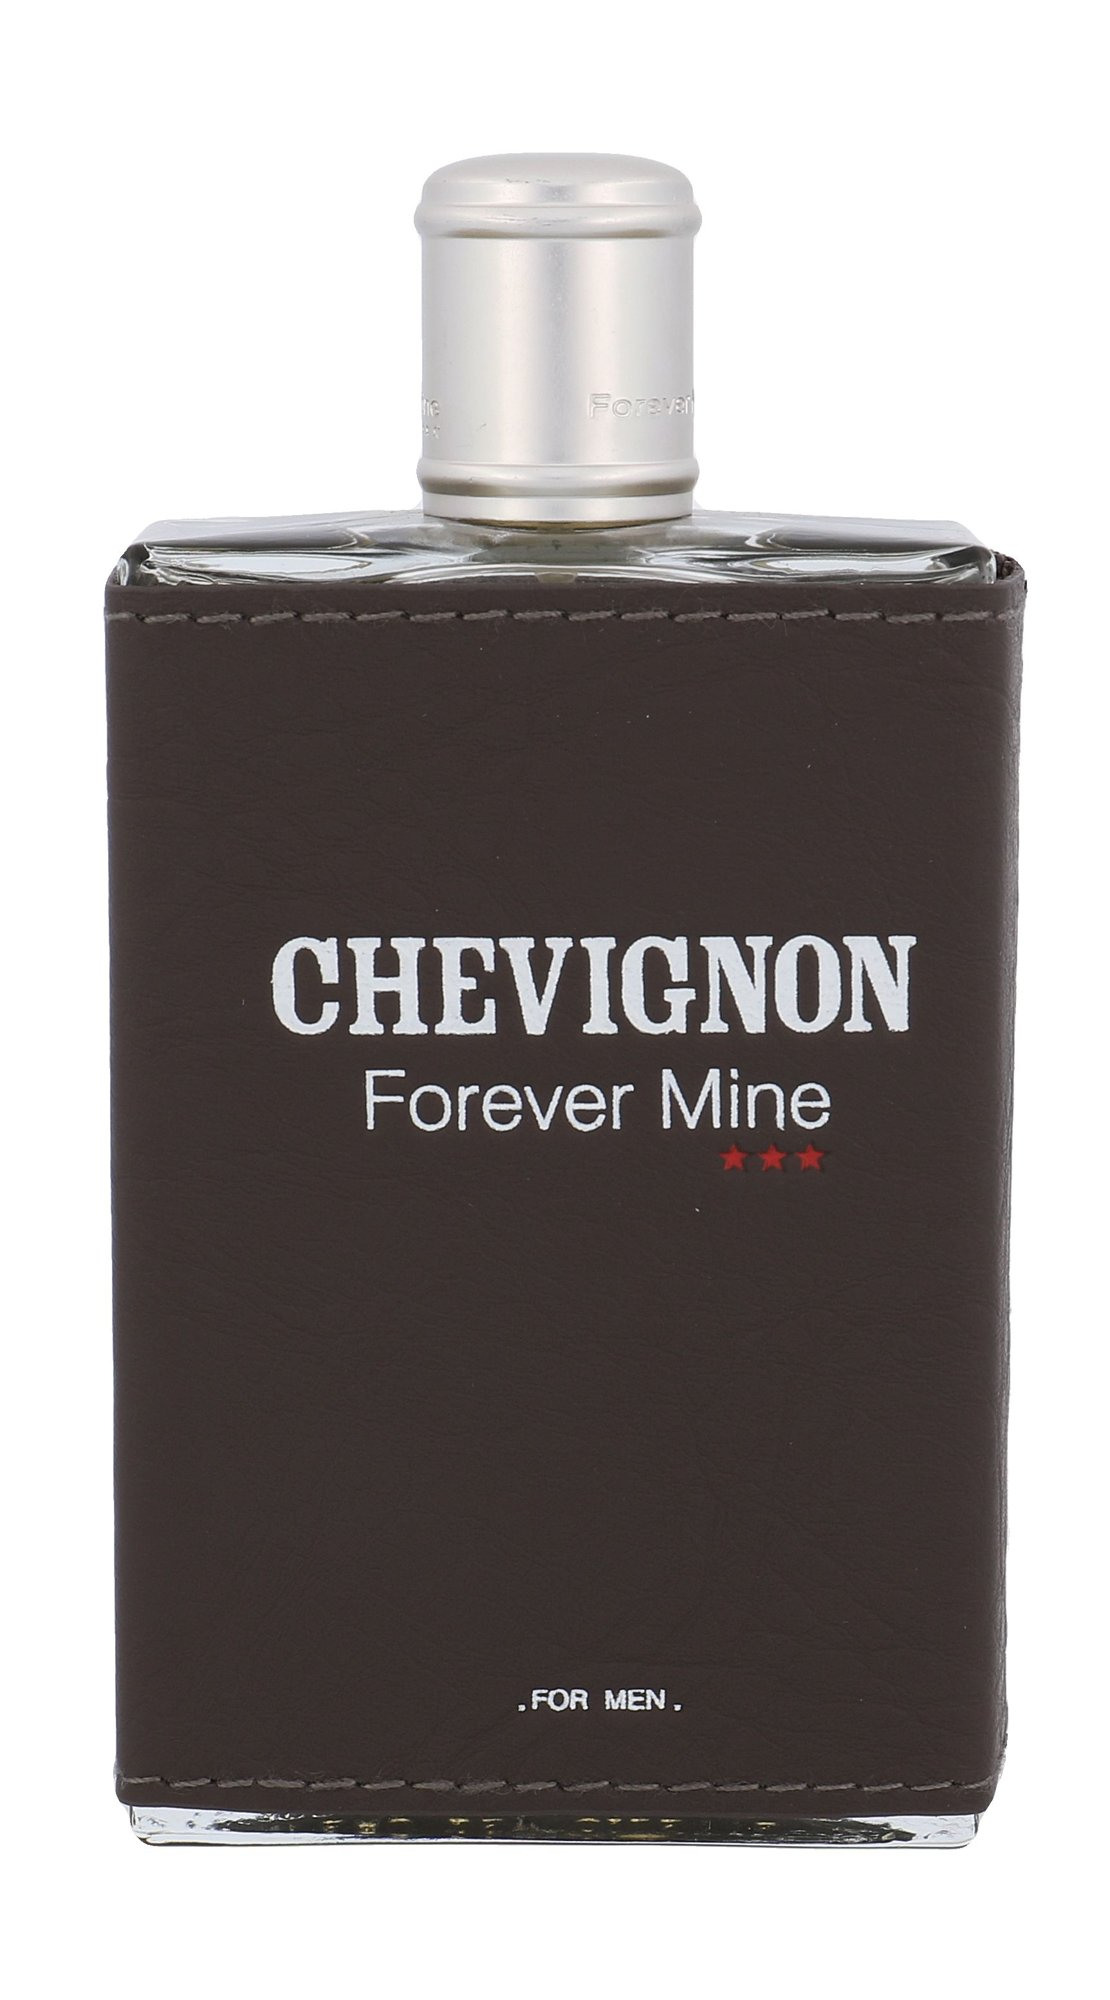 Chevignon Forever Mine Aftershave 100ml